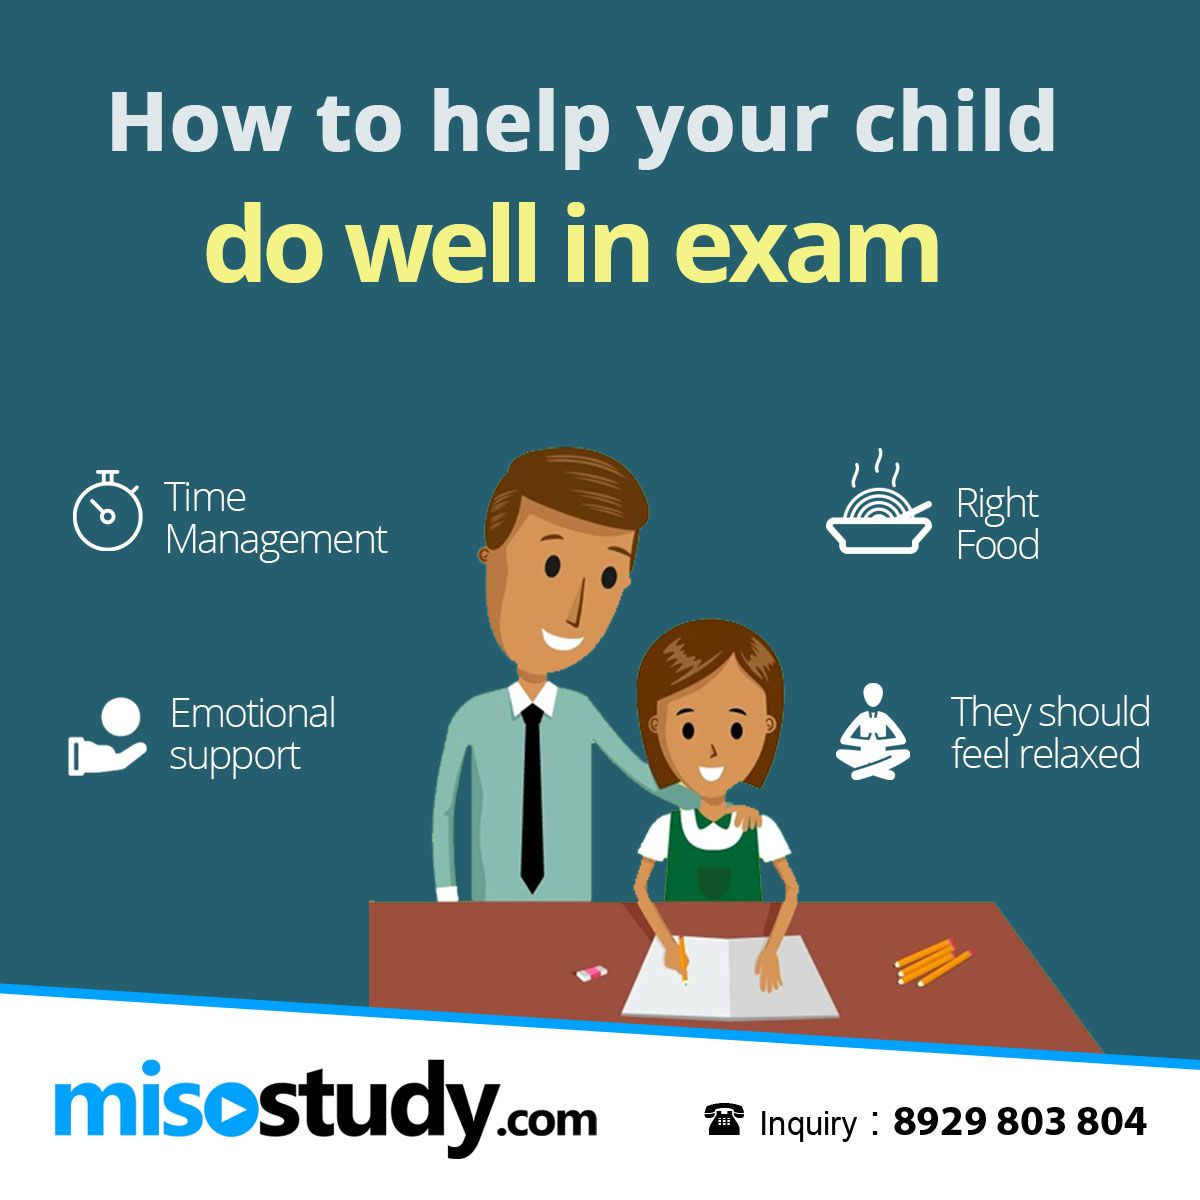 Helpful Tips For The Parents To Help Their Child Do Well In The